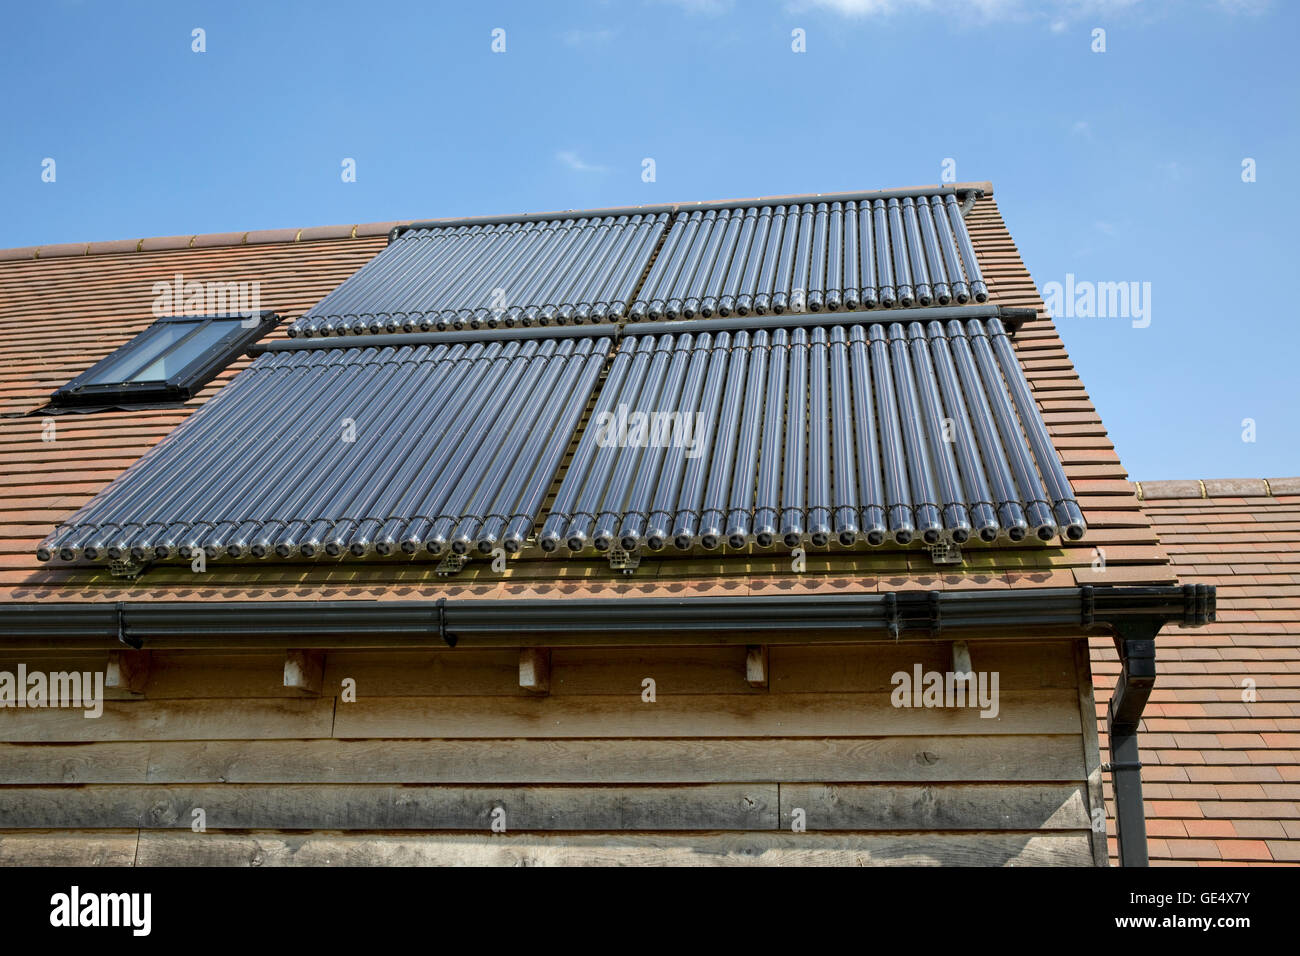 Array 80 solar thermal tubes barn roof Cotswolds UK - Stock Image